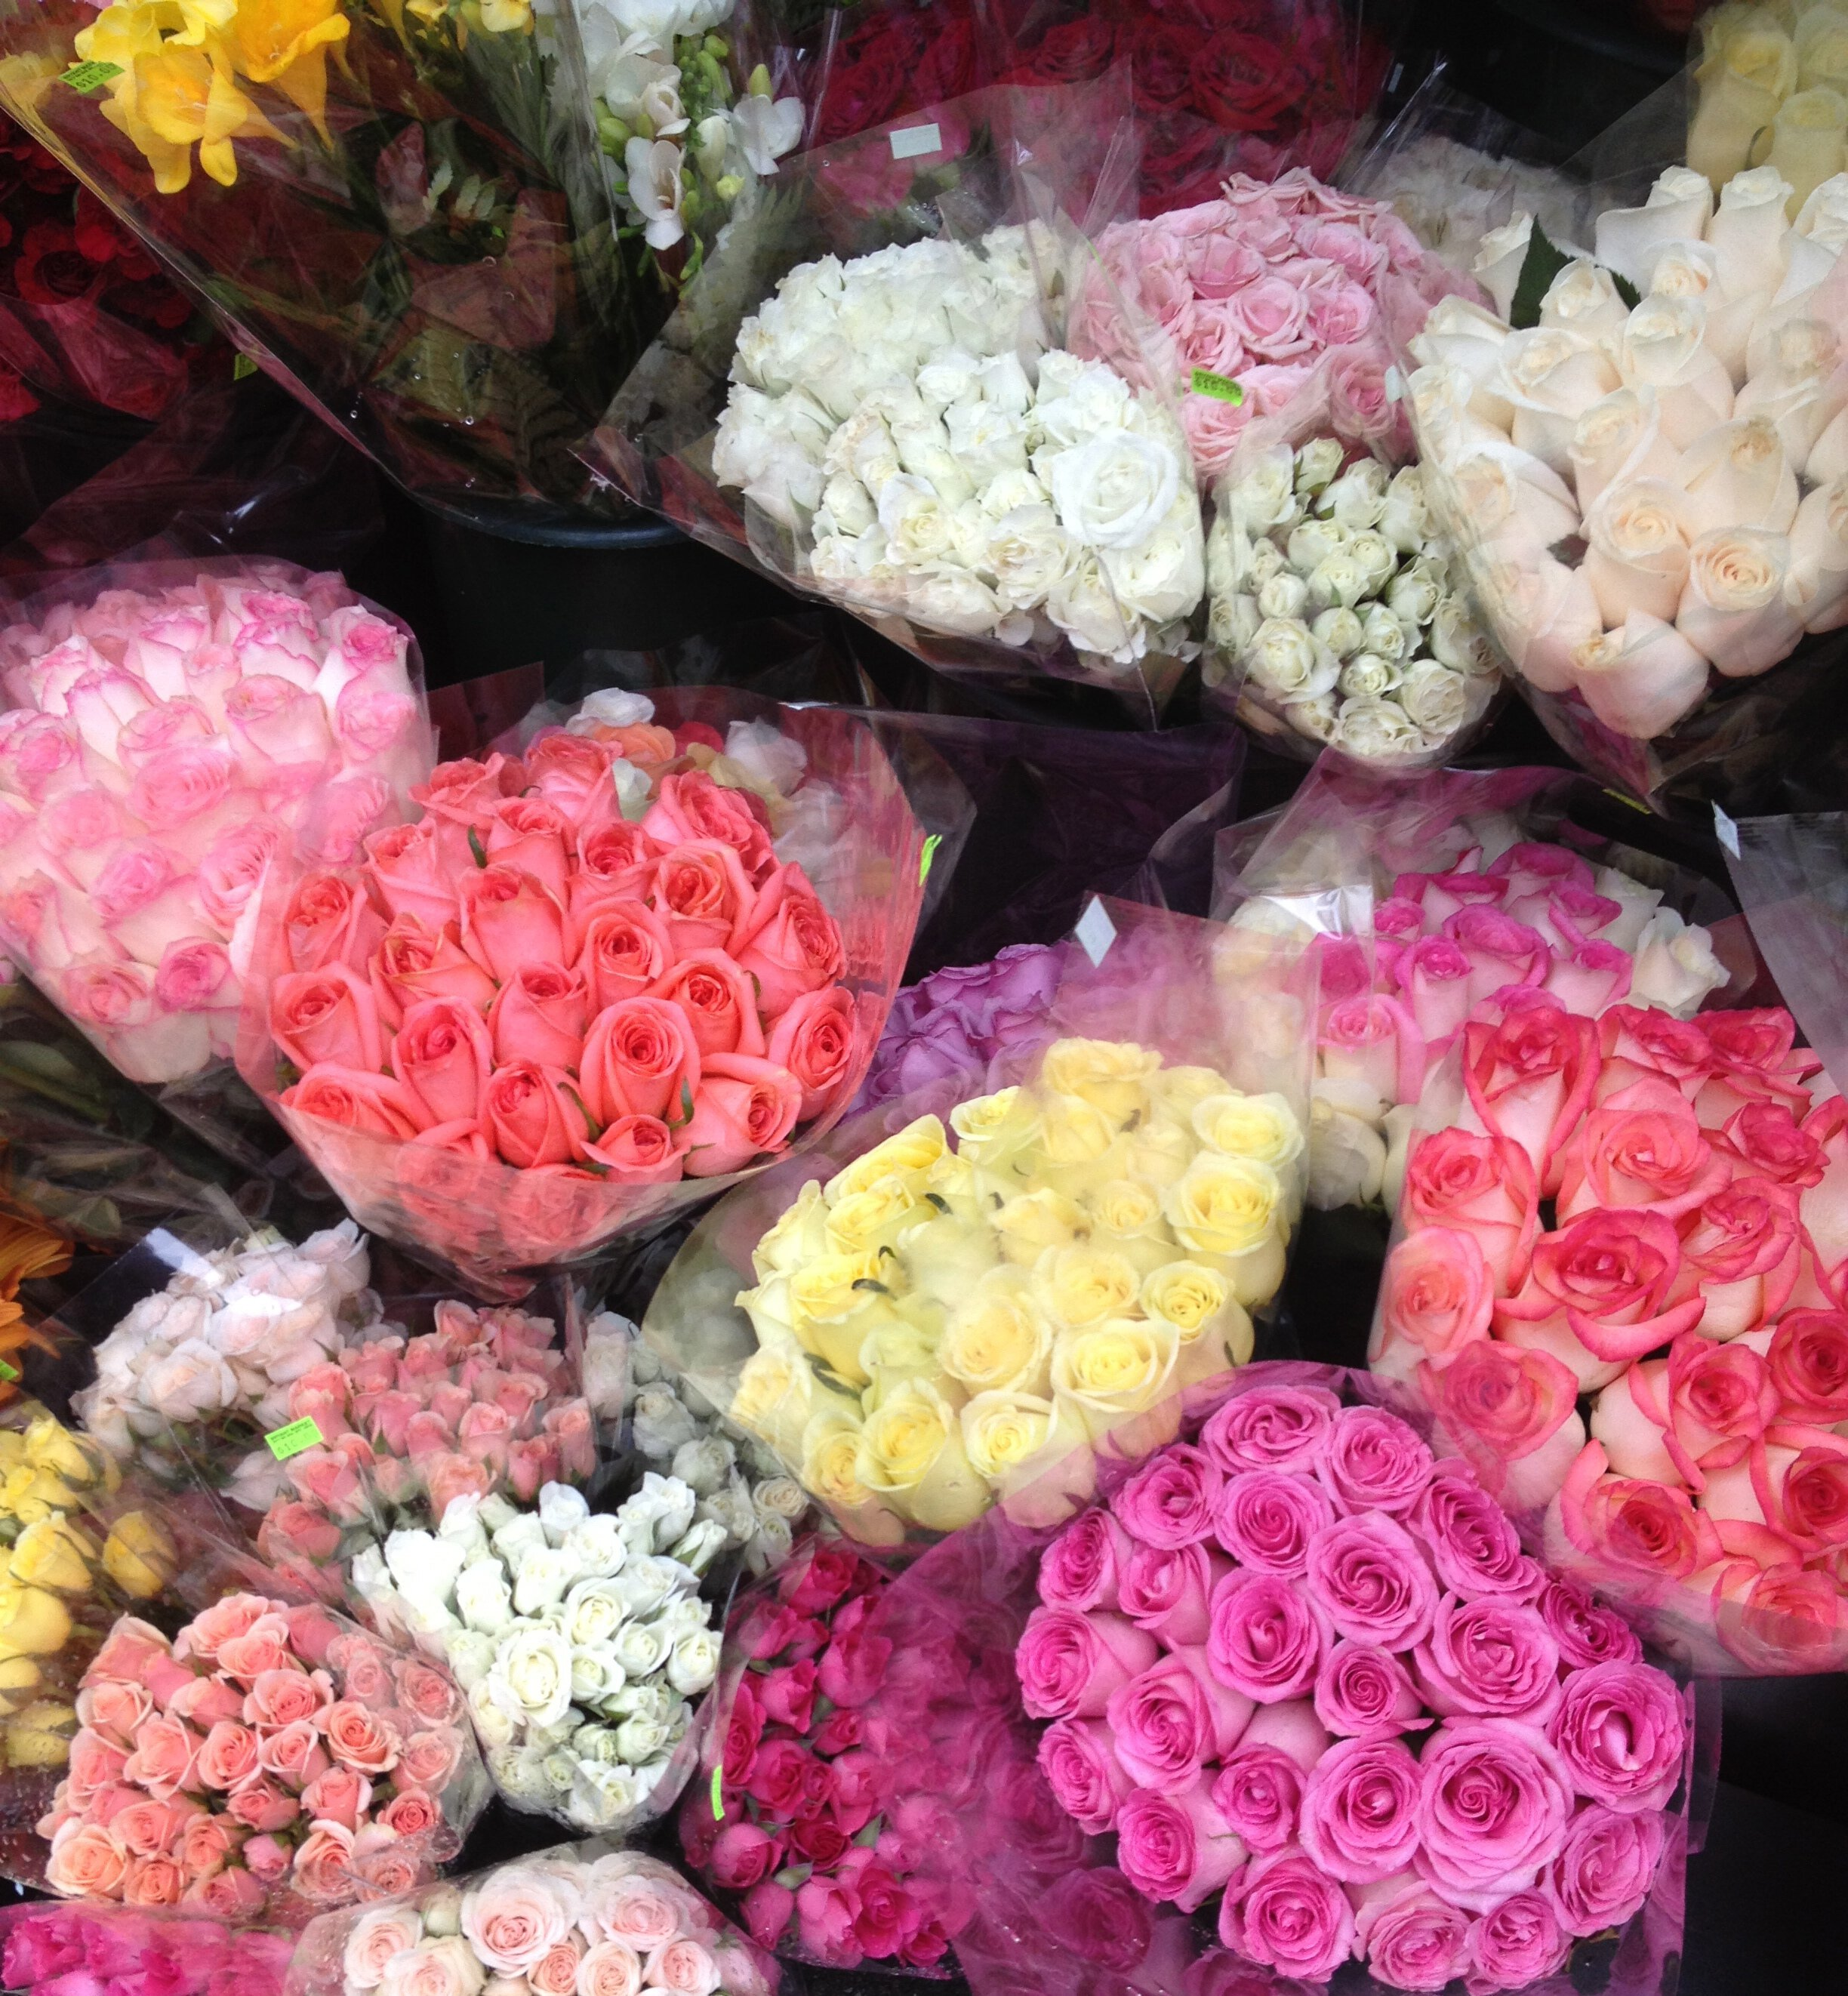 Why buying yourself flowers is always a good idea lauren cecchi many studies have shown that having a small bouquet in your home or office can positively affect your mood theyve been known to increase happiness levels izmirmasajfo